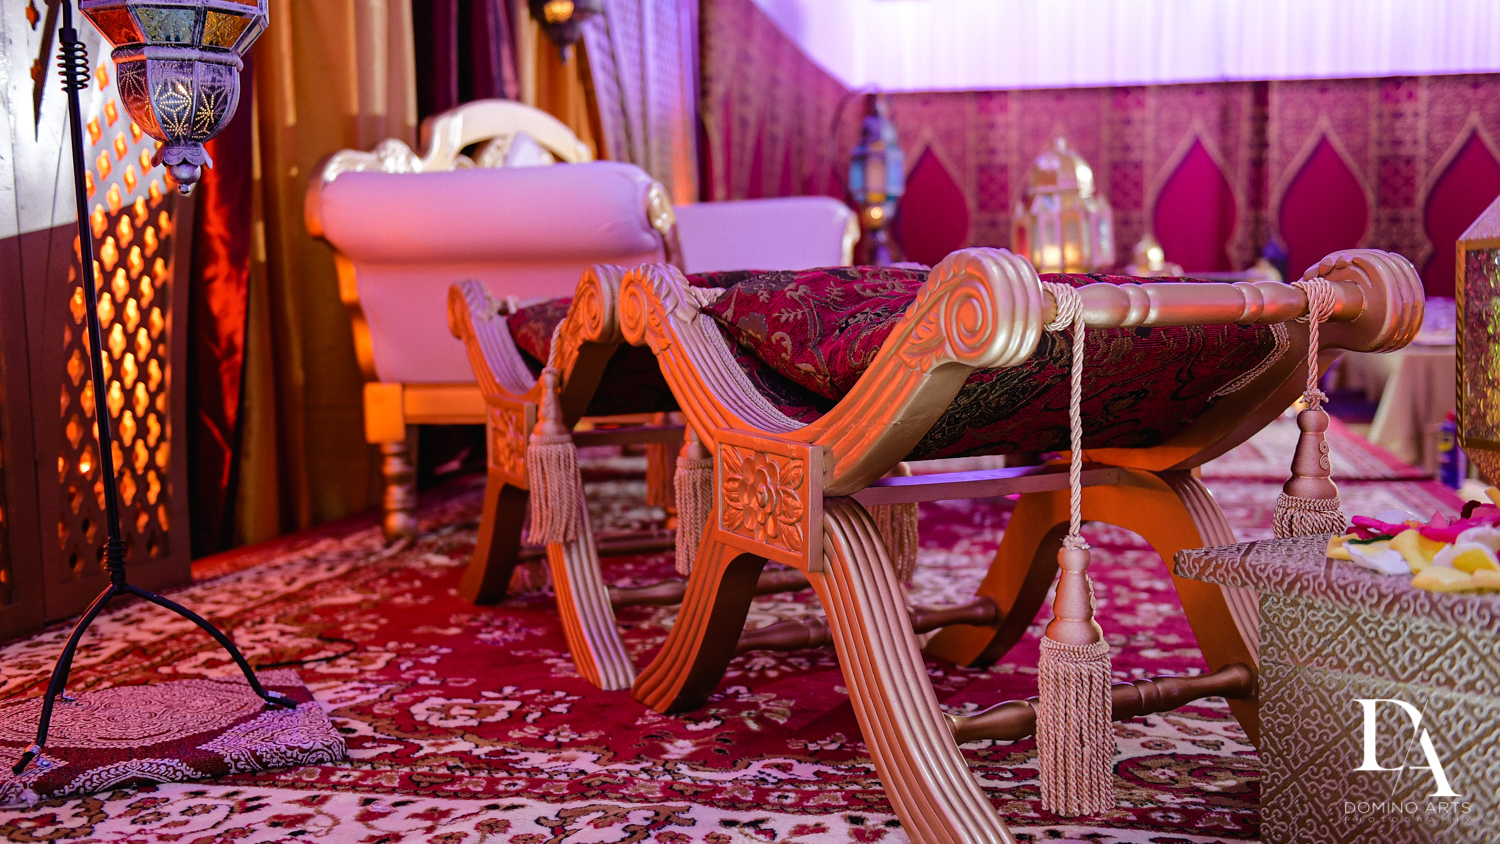 details and furniture at Authentic Morrocan Jewish Henna Party by Domino Arts Photography